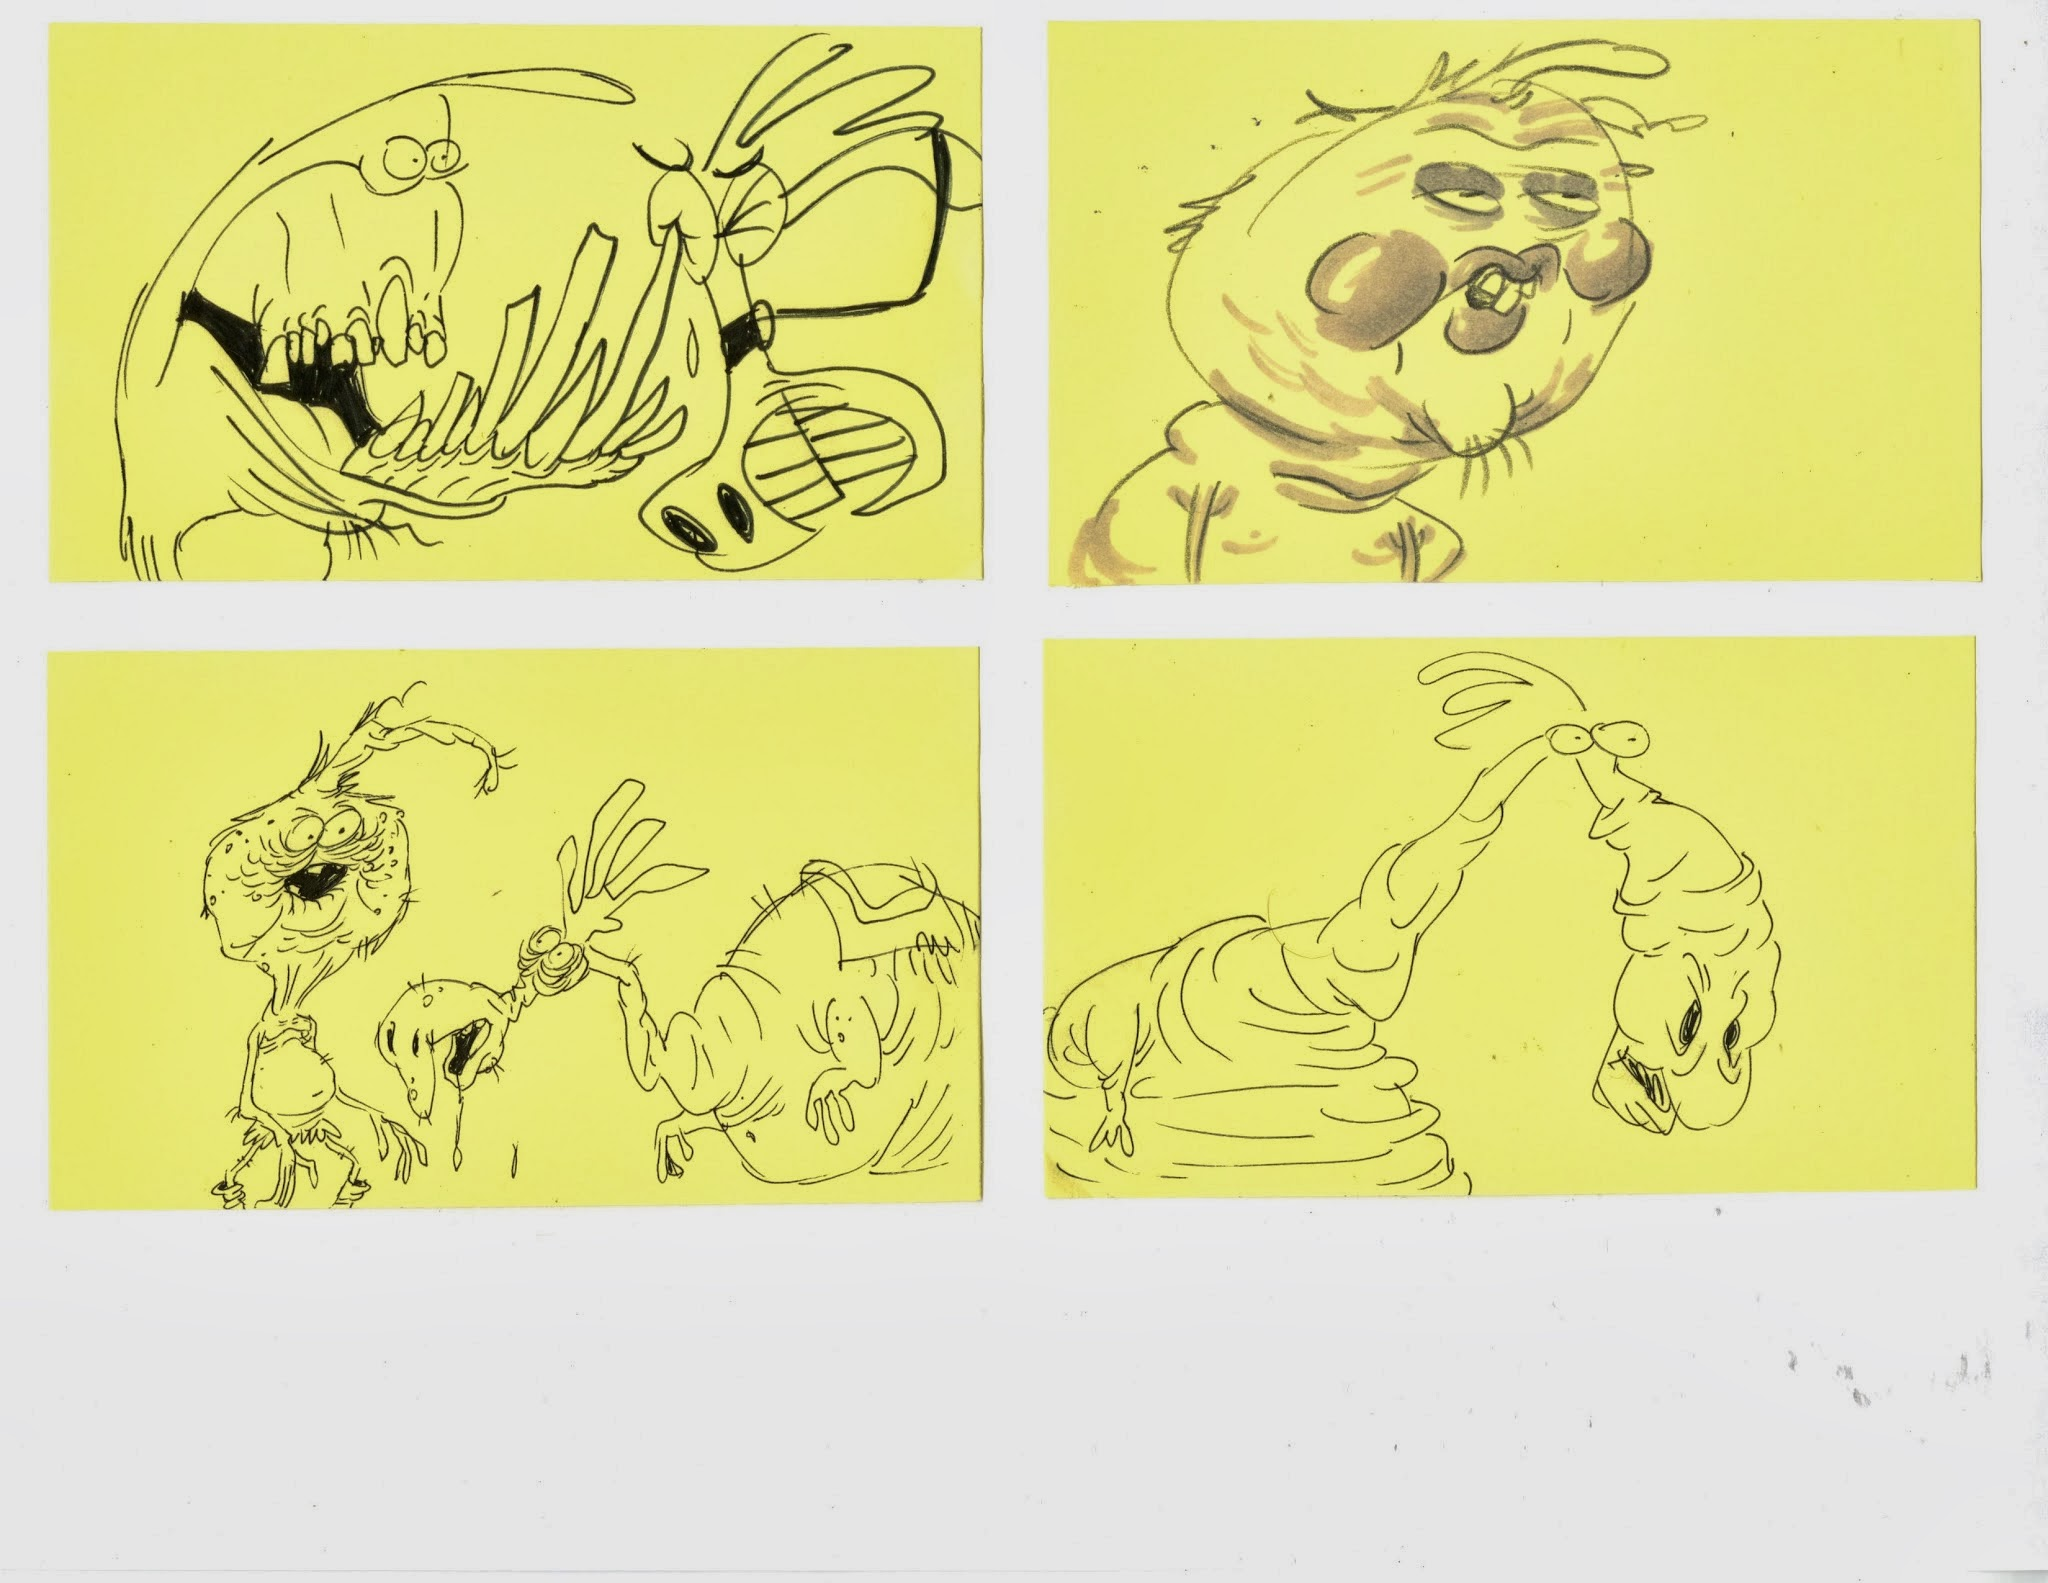 2048x1583 Post It Drawing Scans023 Derpy News Wander Over Yonder